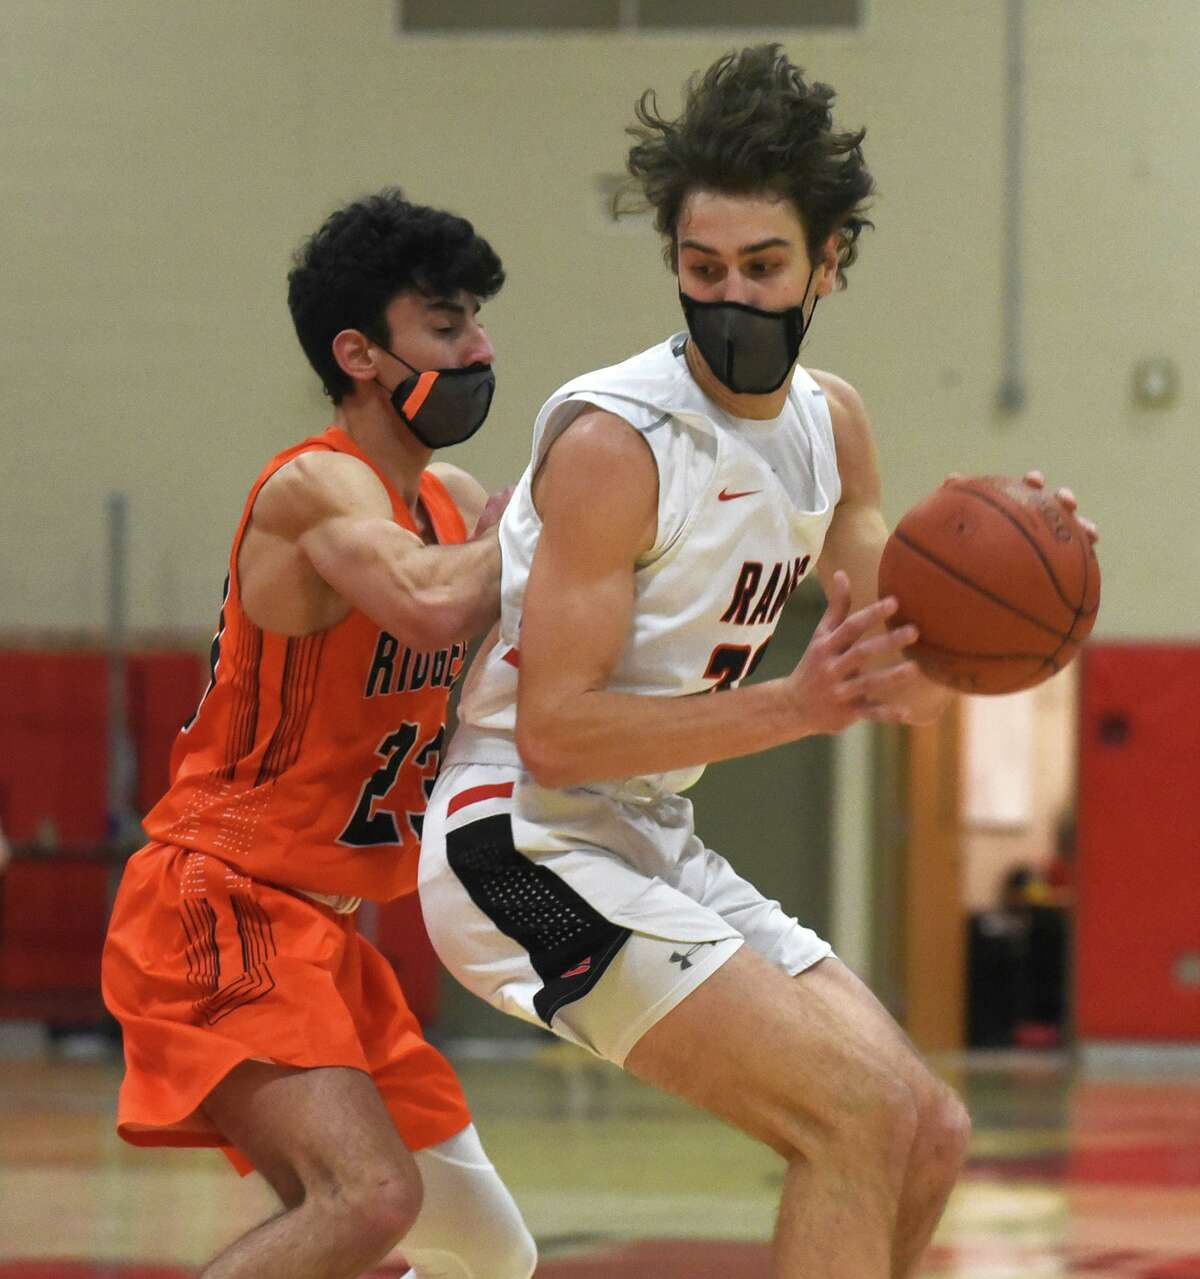 New Canaan's Leo Magnus (20) drives against Ridgefield's Ben Klotz (23) during a boys basketball game at New Canaan High School on Wednesday.